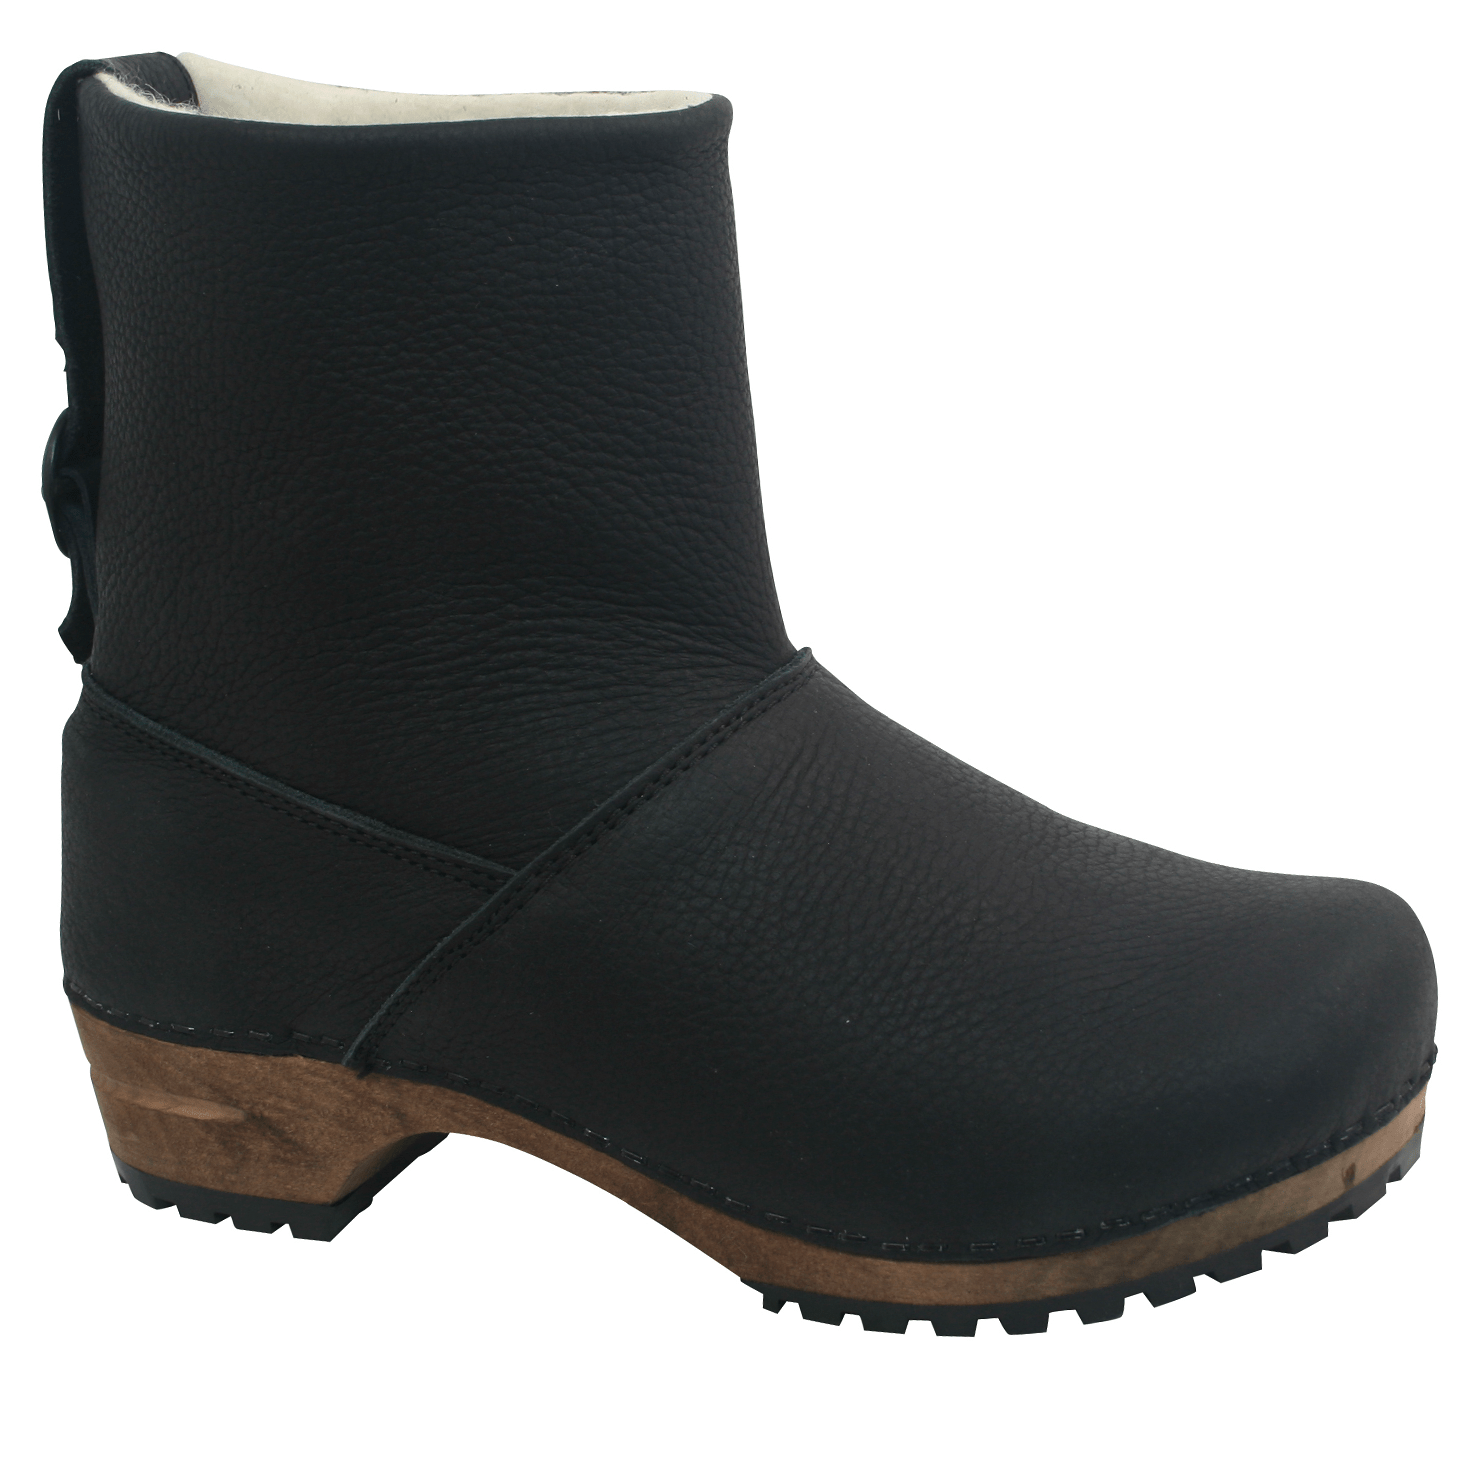 Sanita Silkan Women's in Black Boot